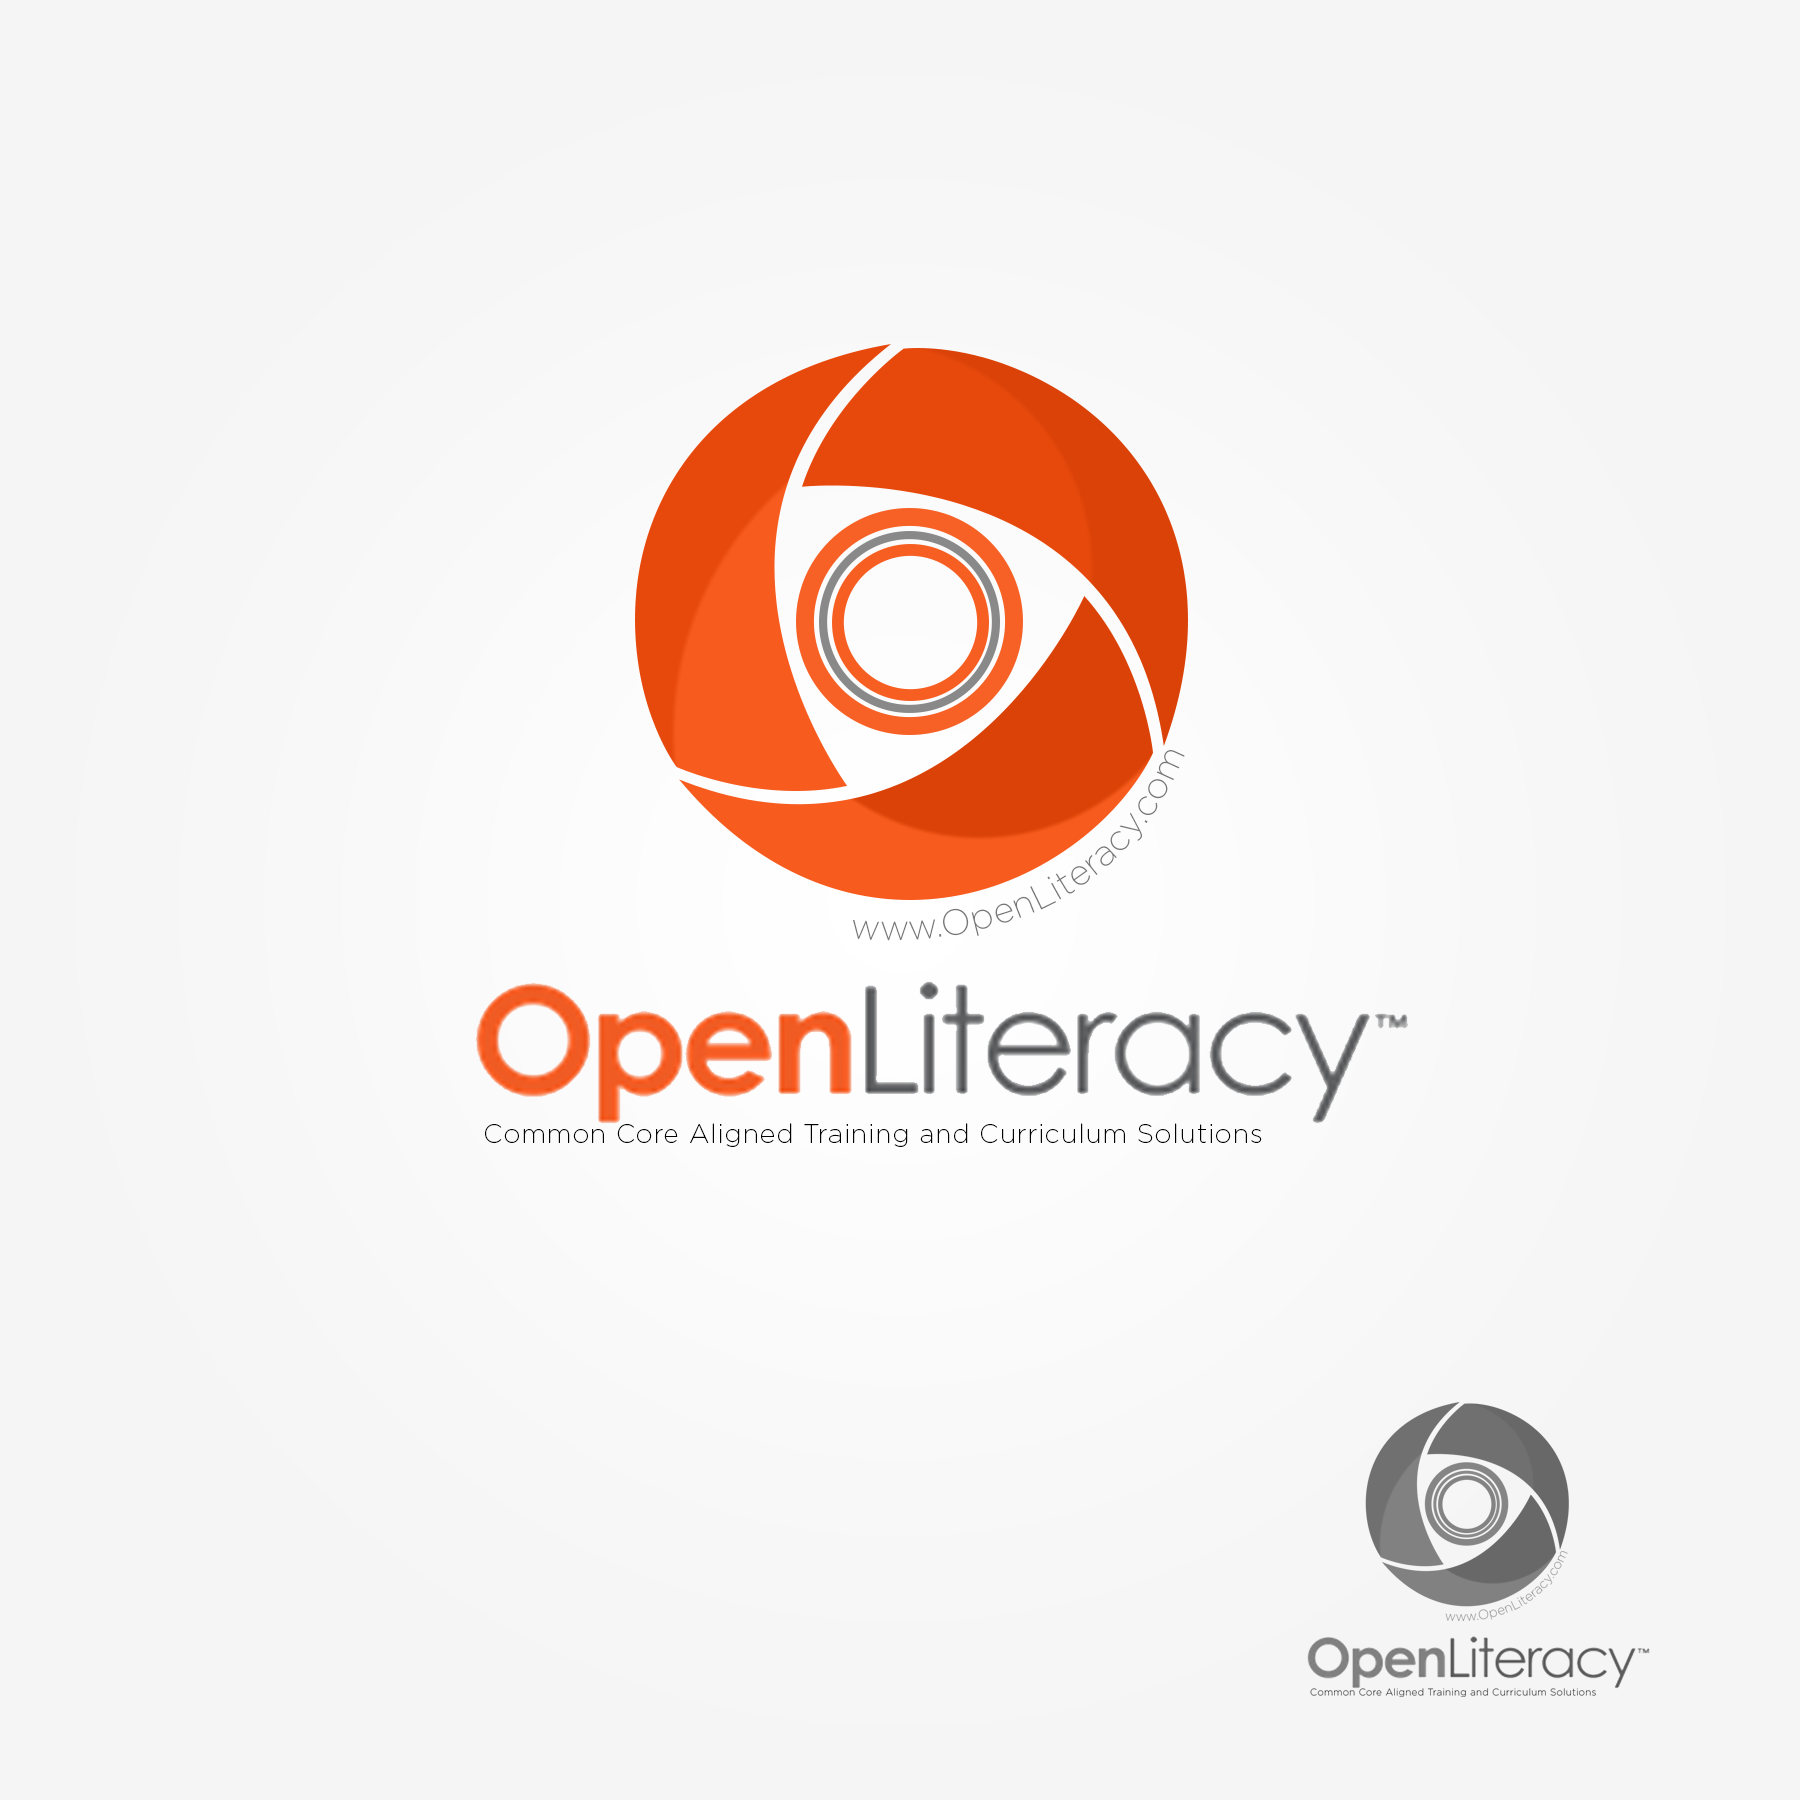 Logo Design by Lemuel Arvin Tanzo - Entry No. 133 in the Logo Design Contest Inspiring Logo Design for OpenLiteracy.